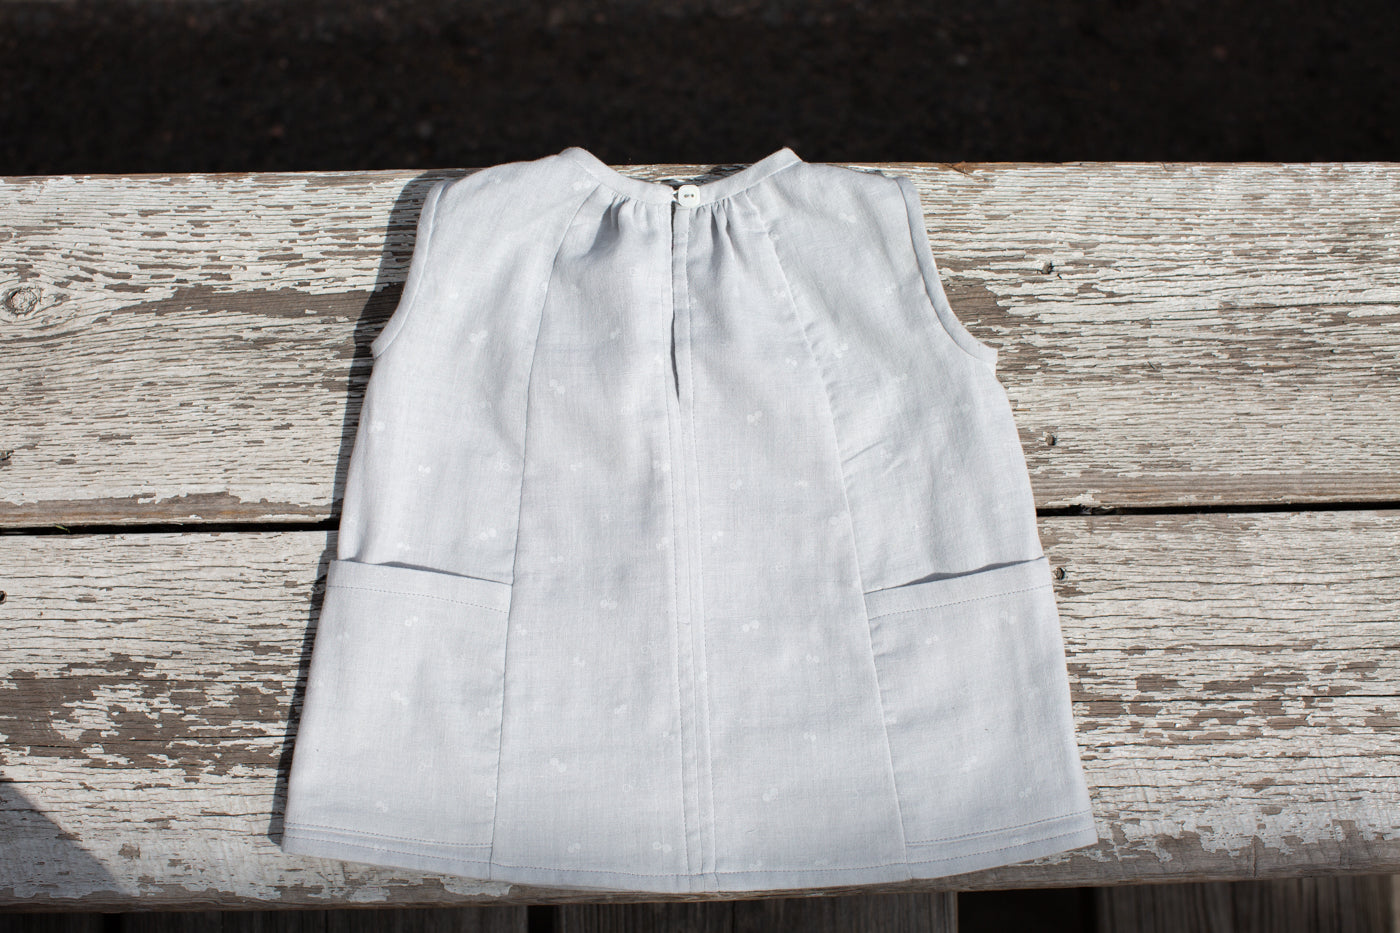 Pale blue little kids dress.  This is a lay flat with the dress on top of a rustic wooden ledge.